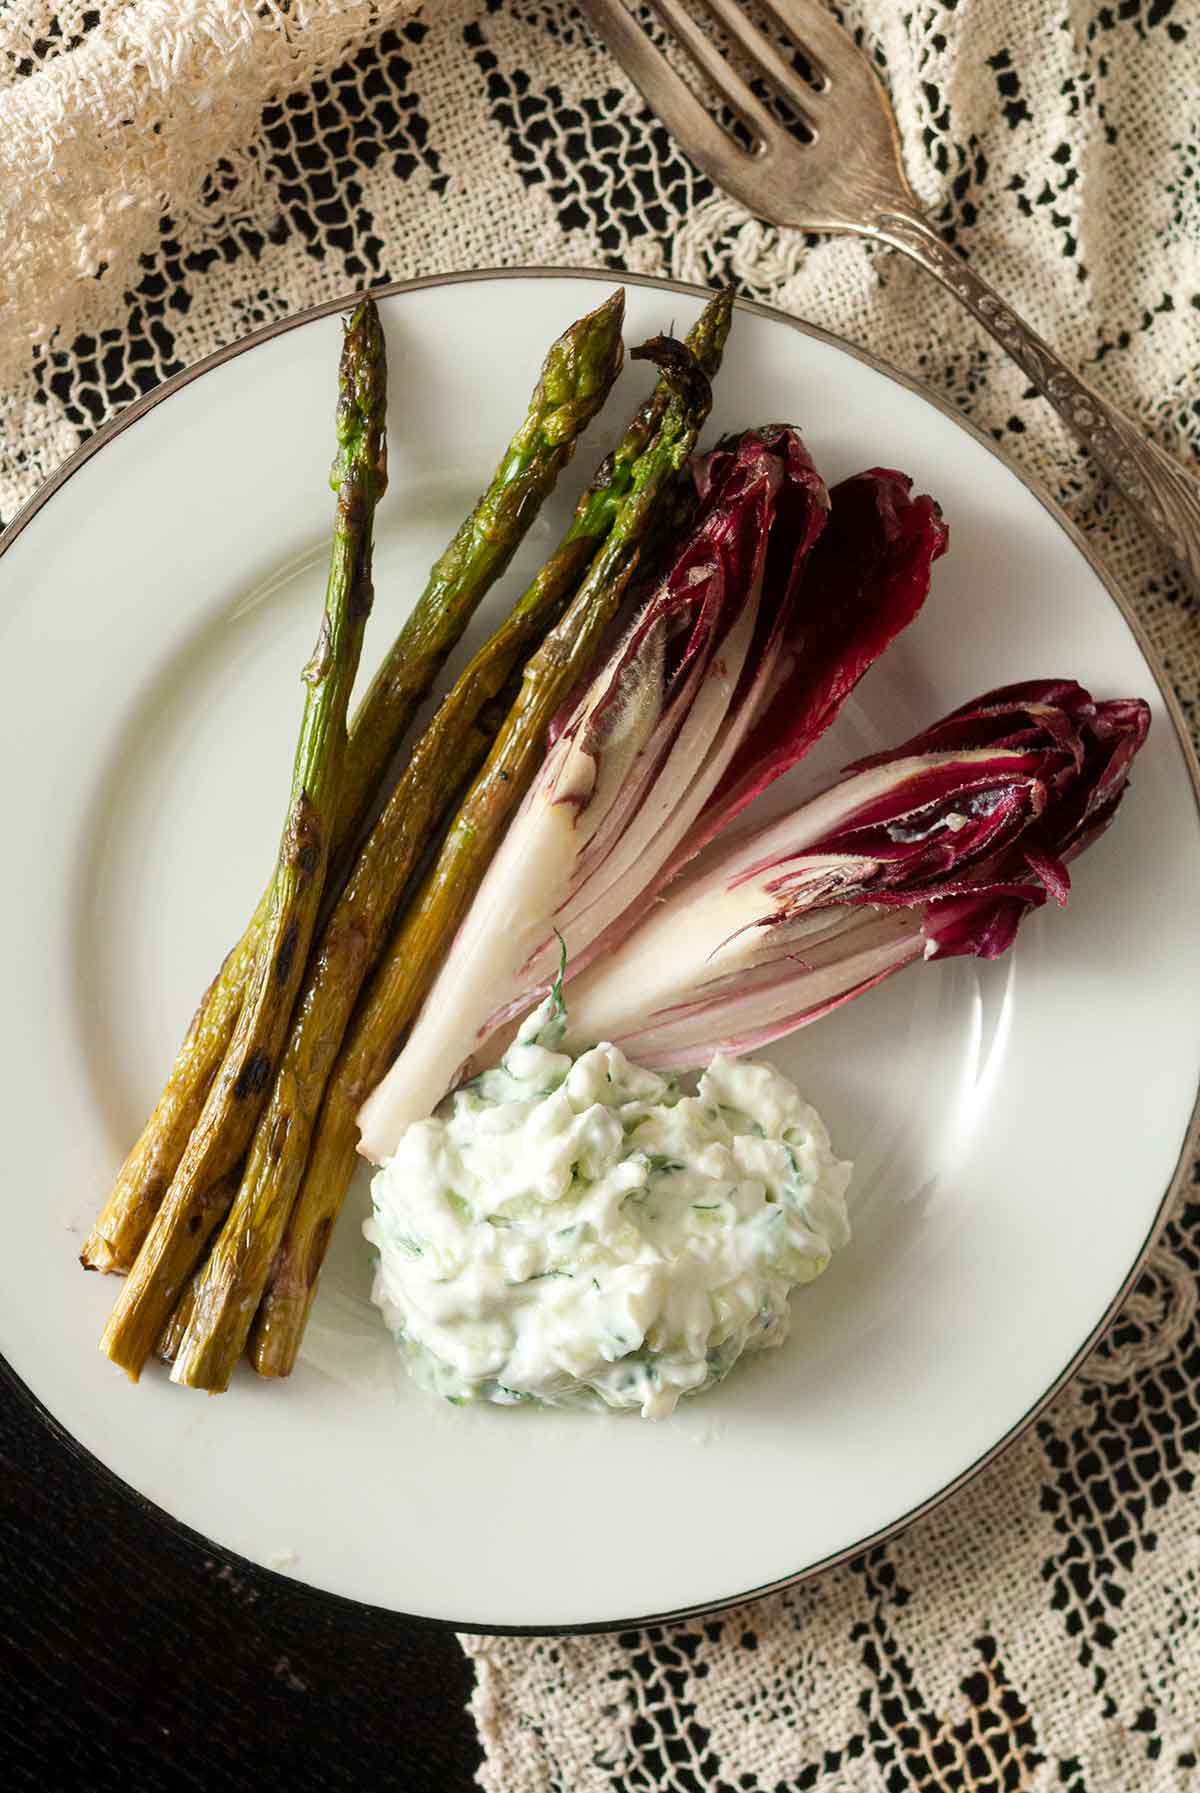 A plate with 2 sliced endive, 4 asparagus and a small pile of tzatziki.